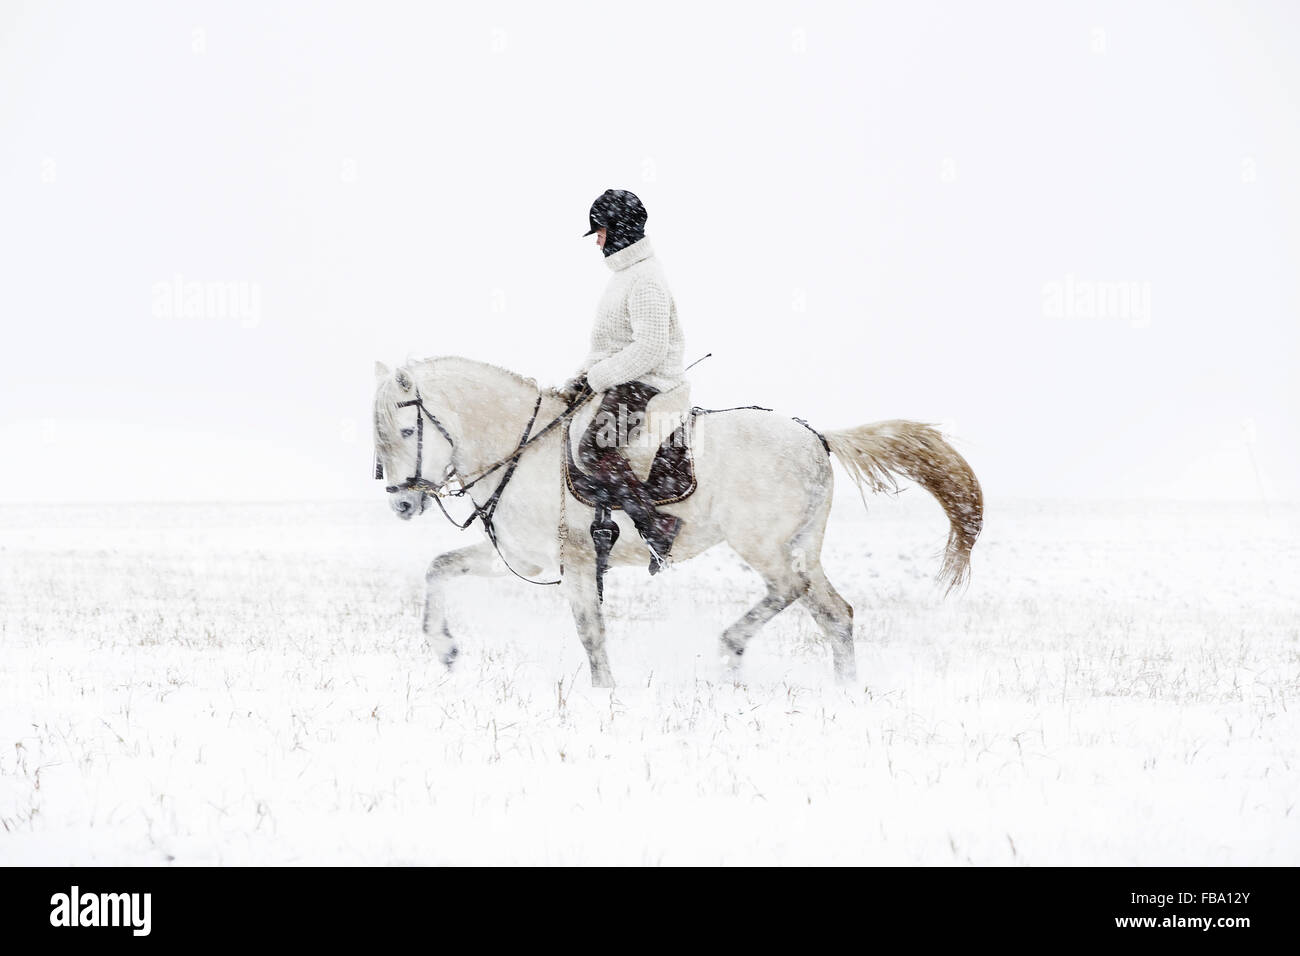 La Suède, Teenage girl (14-15) riding horse Photo Stock